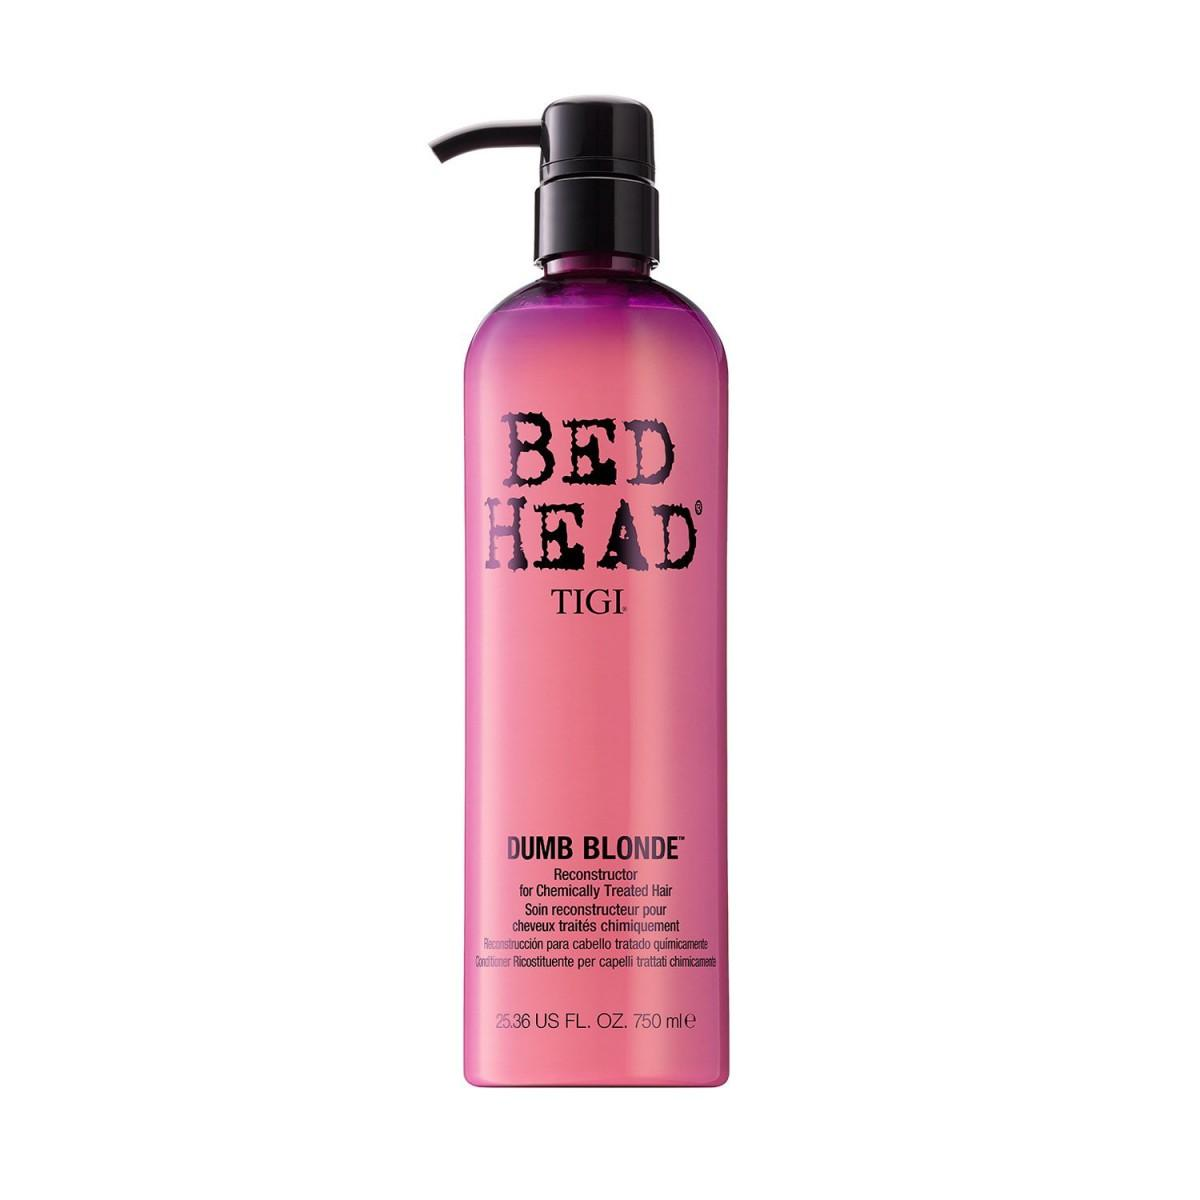 Tigi Bed Head Dumb Blonde Reconstructor For Chemically Treated Hair 750 ml